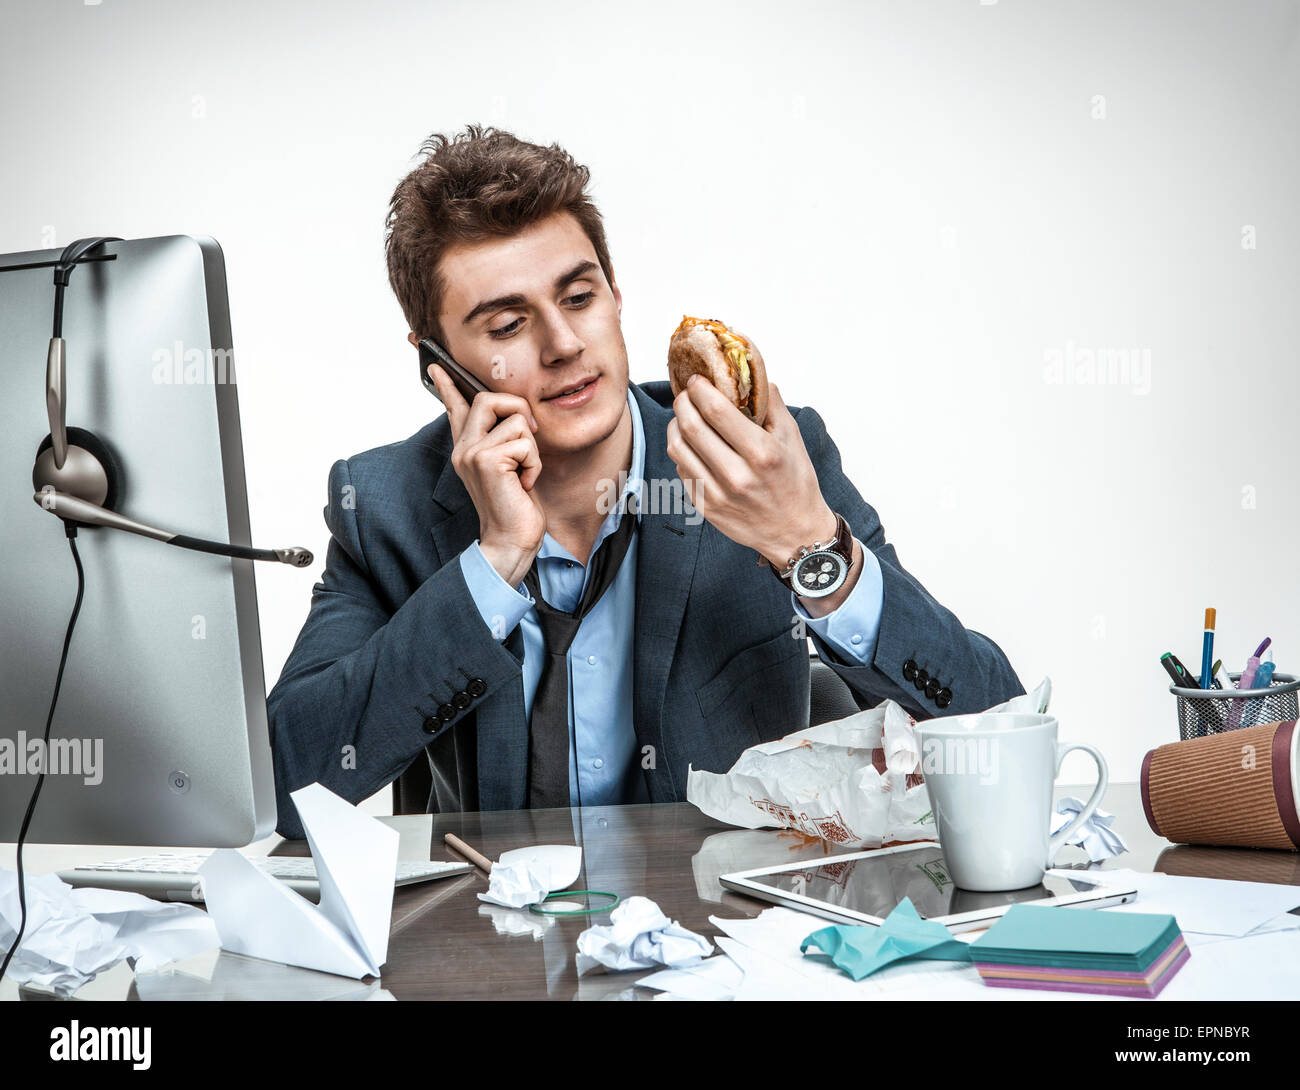 Slacker man talking on the phone while eating at work / modern office man at working place, sloth and laziness concept - Stock Image